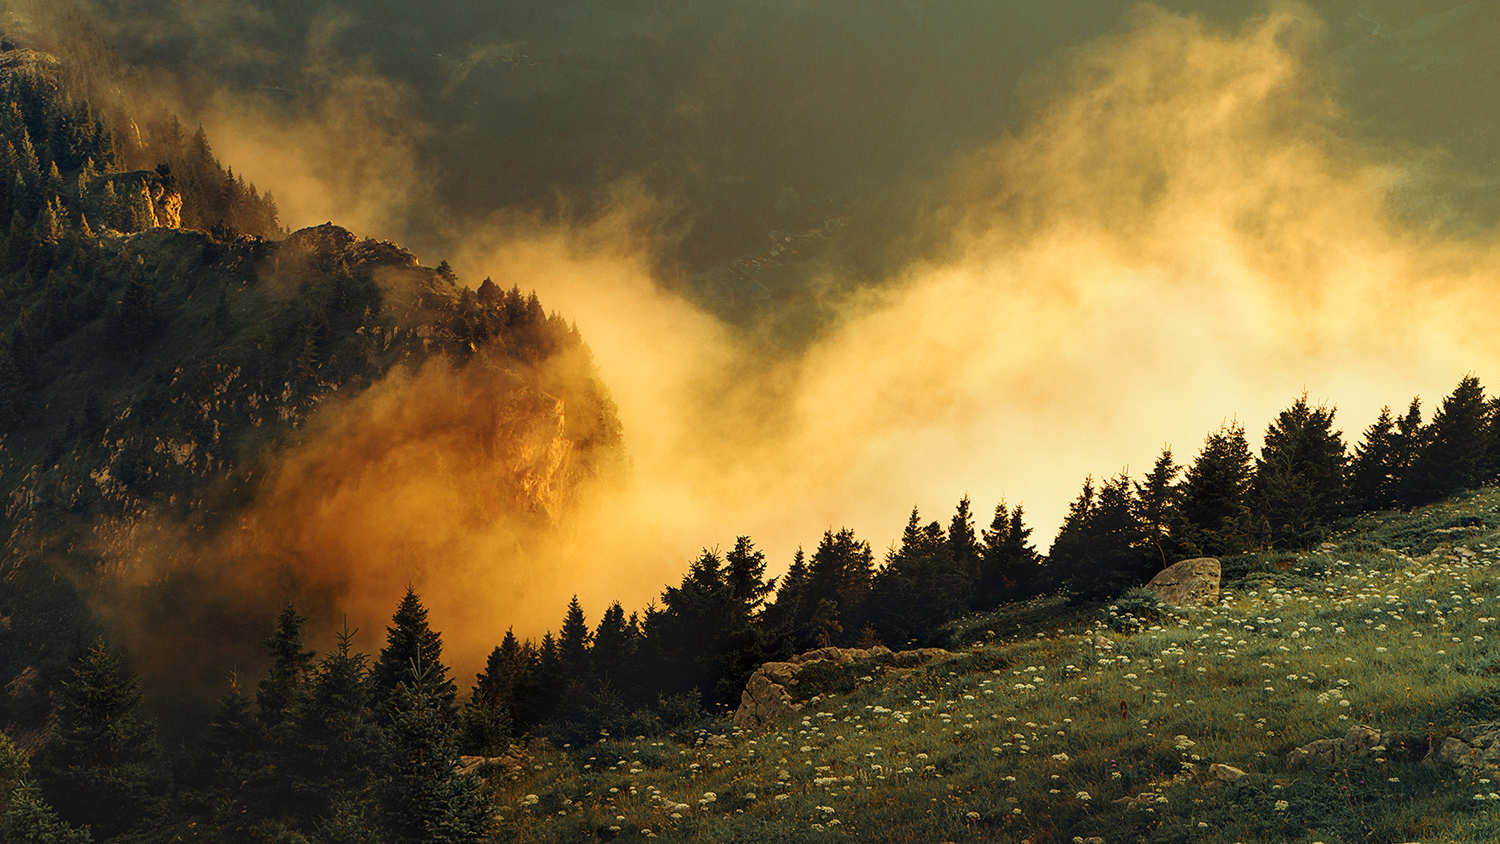 Raphaelle Monvoisin, The Golden Mist, Dusk French Alps mountains